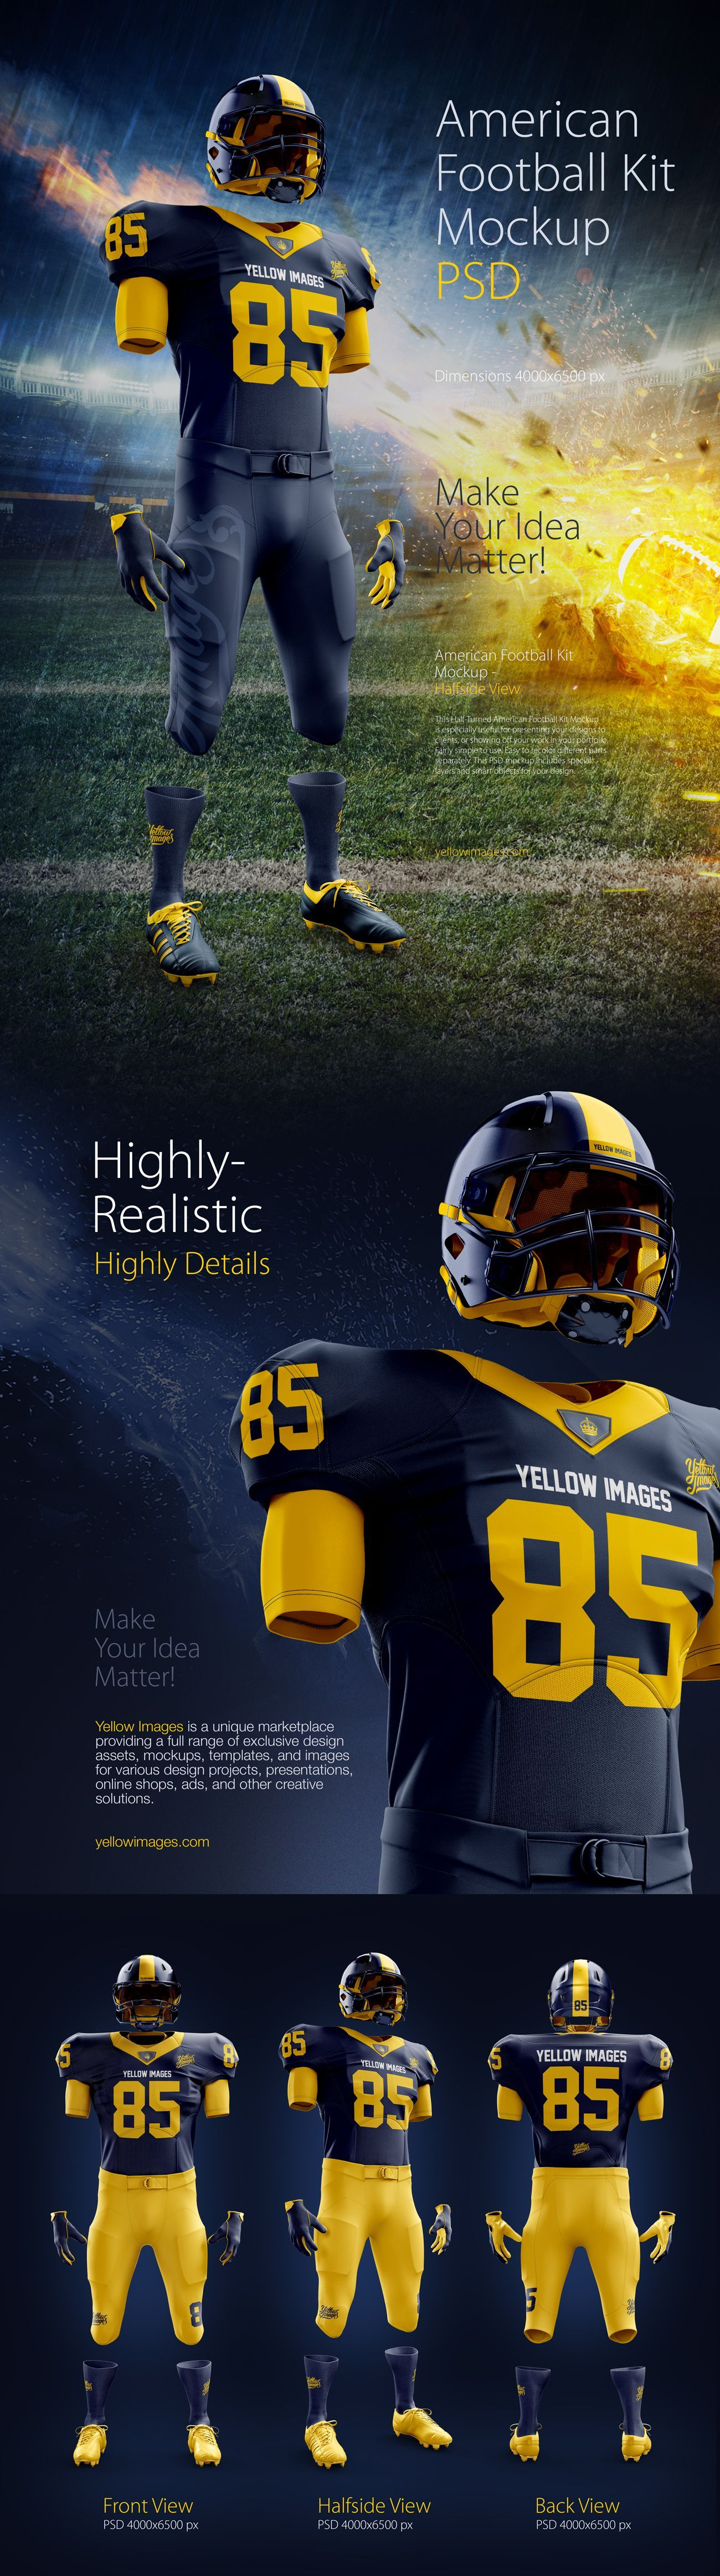 Download American Football Kit Mockup Psd Present Your Design On This Mockup Includes S Uniformes Futbol